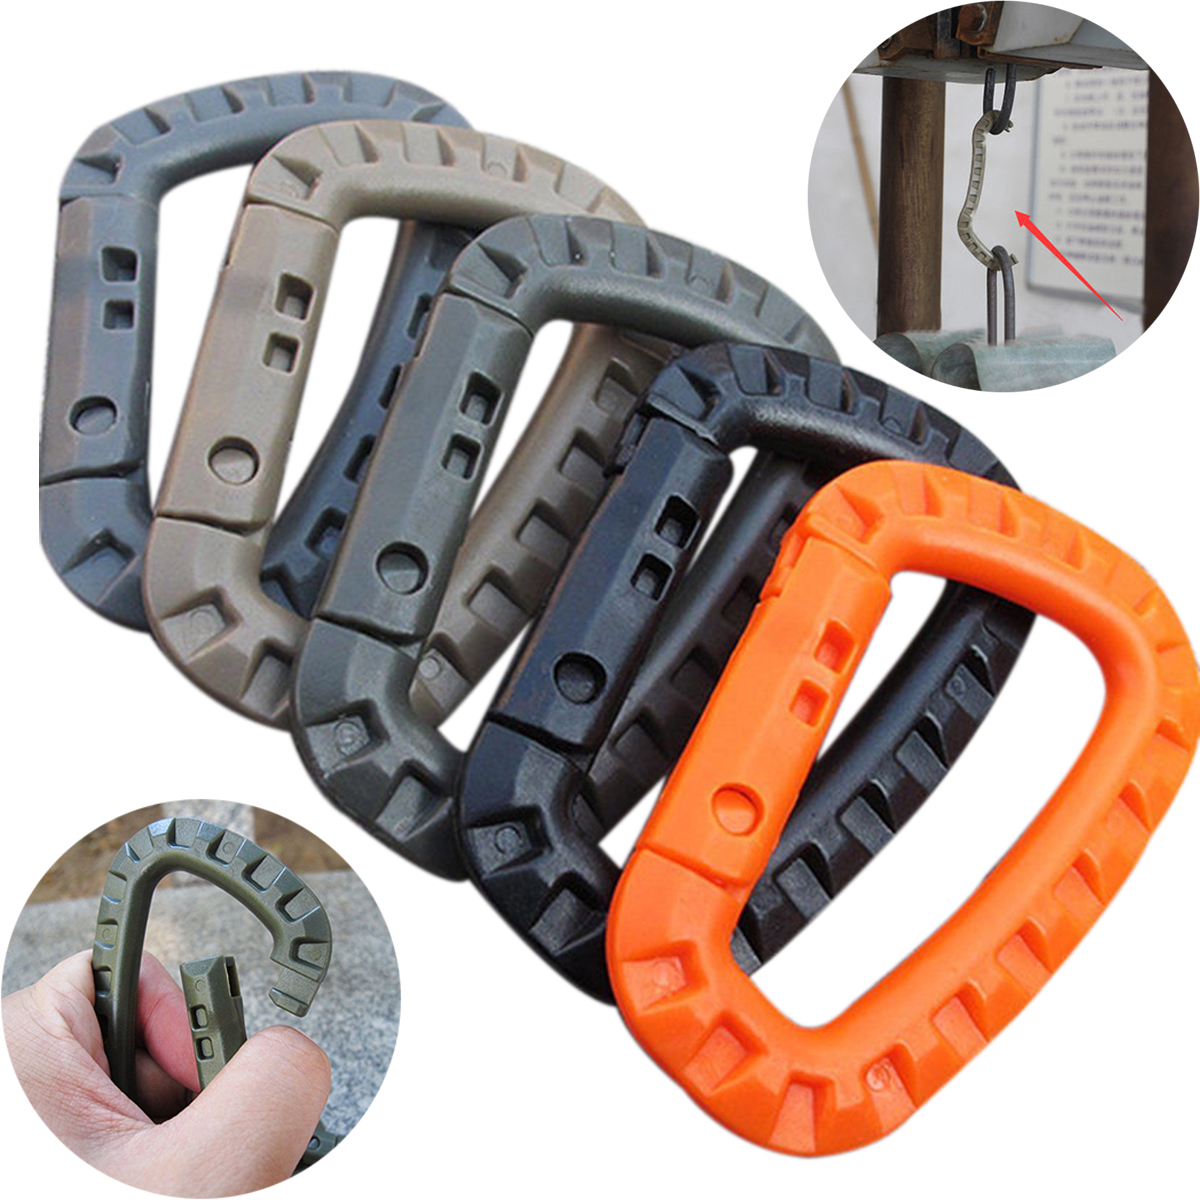 5 Pcs/pack Plastic Climbing Carabiner D-Ring Key Chain Clip Hook Camping Buckle Snap